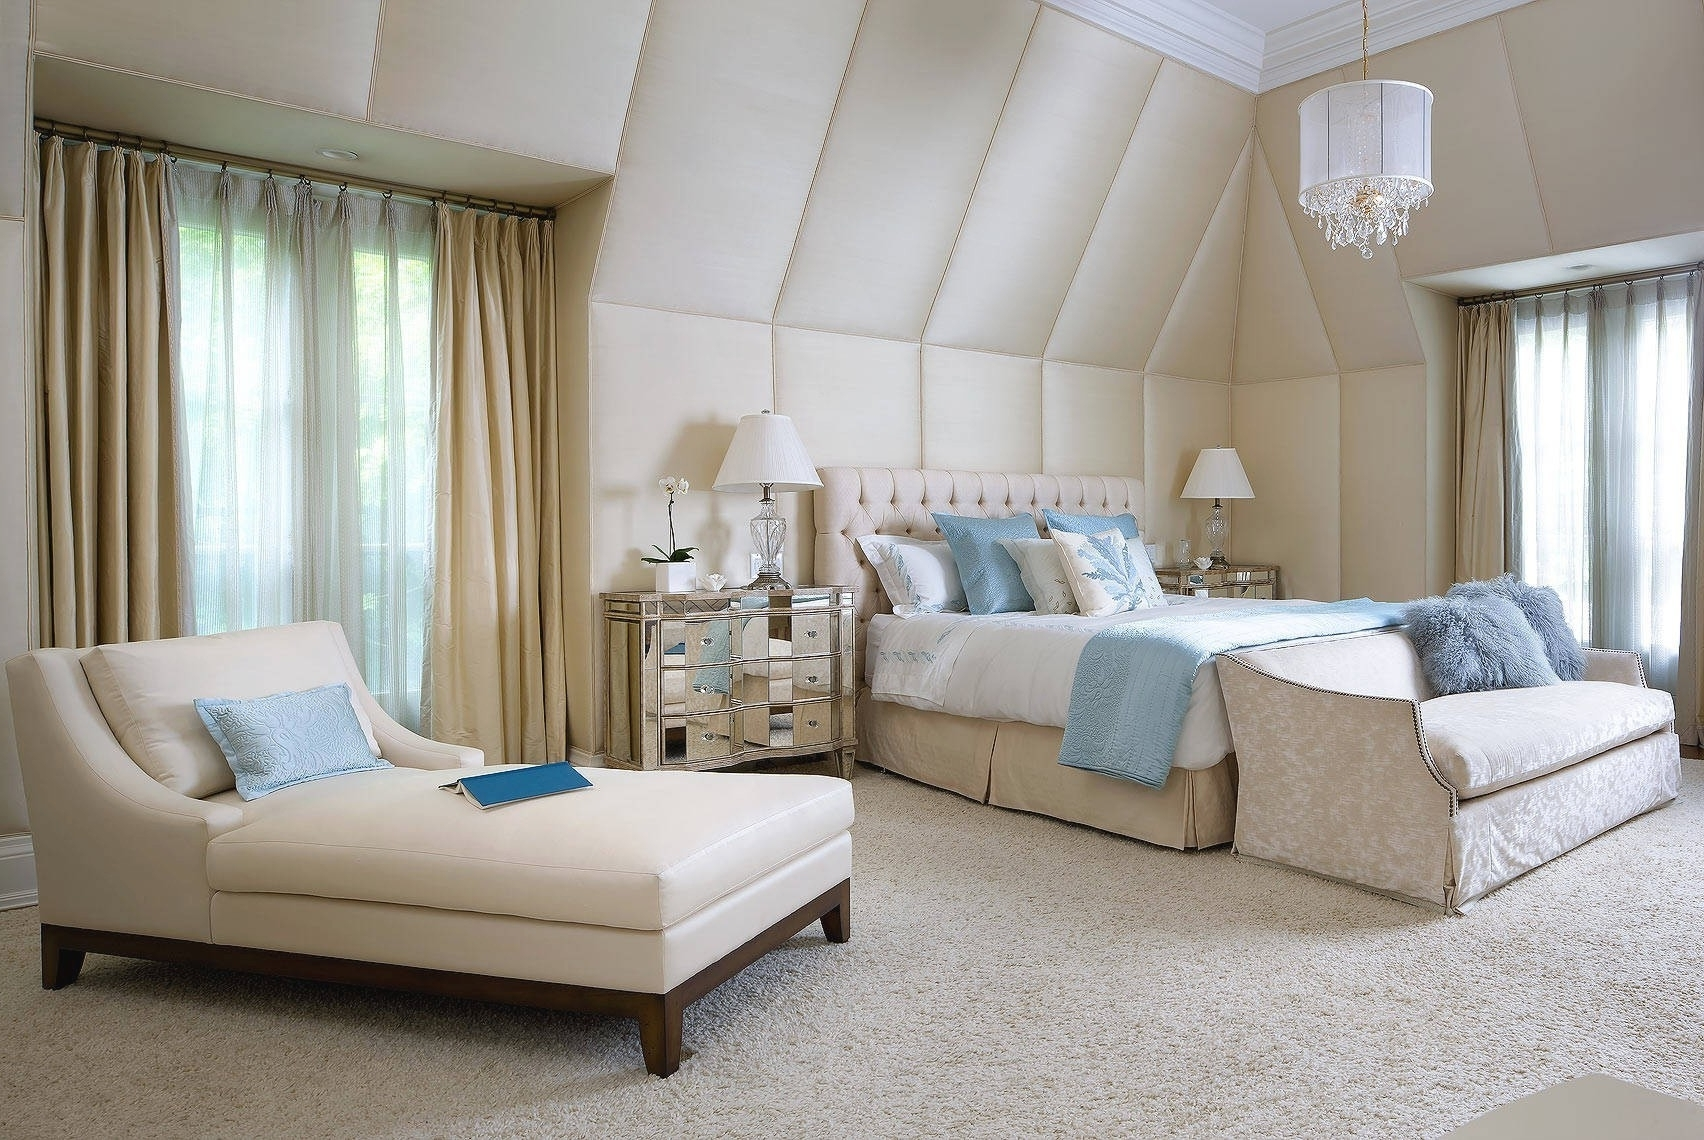 Lounge Chair : Bedroom Chaise Lounge Chairs In Wonderful Bedroom Throughout Well Liked Chaise Lounges For Bedroom (View 2 of 15)